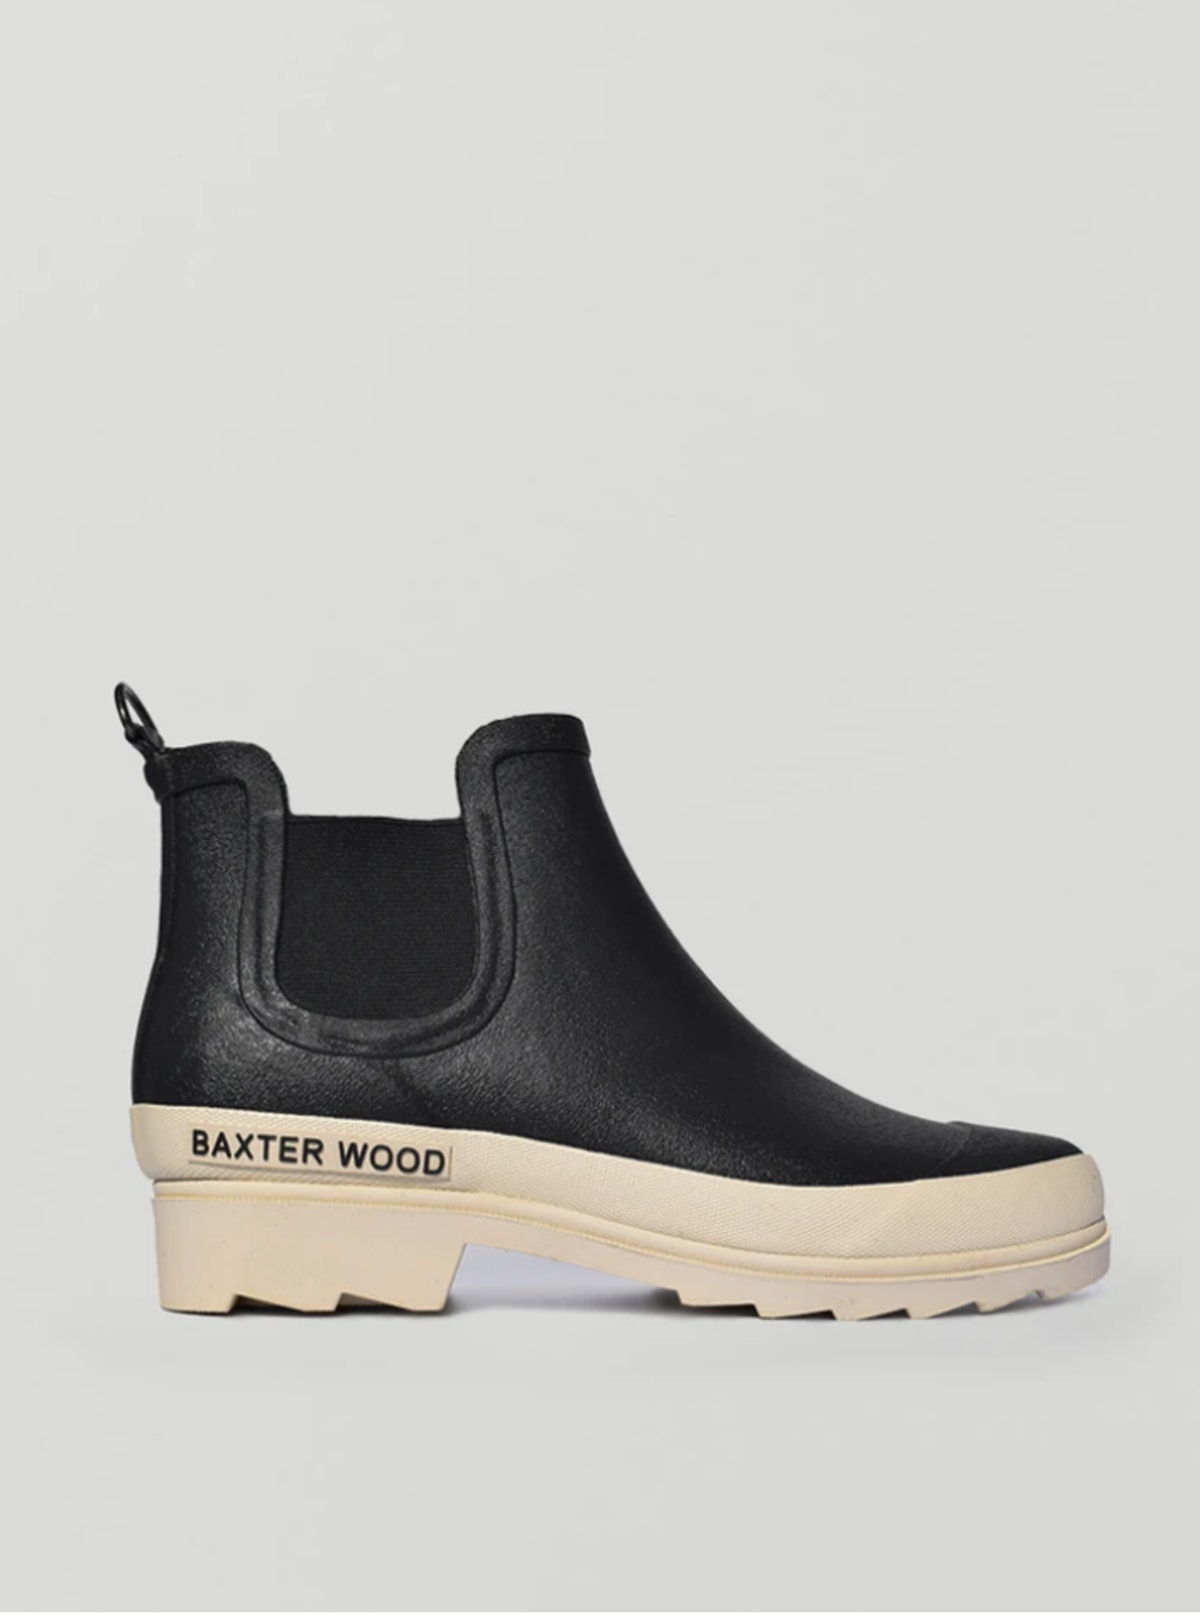 Baxter Wood's White Sold Hevea Chelsea Boots.